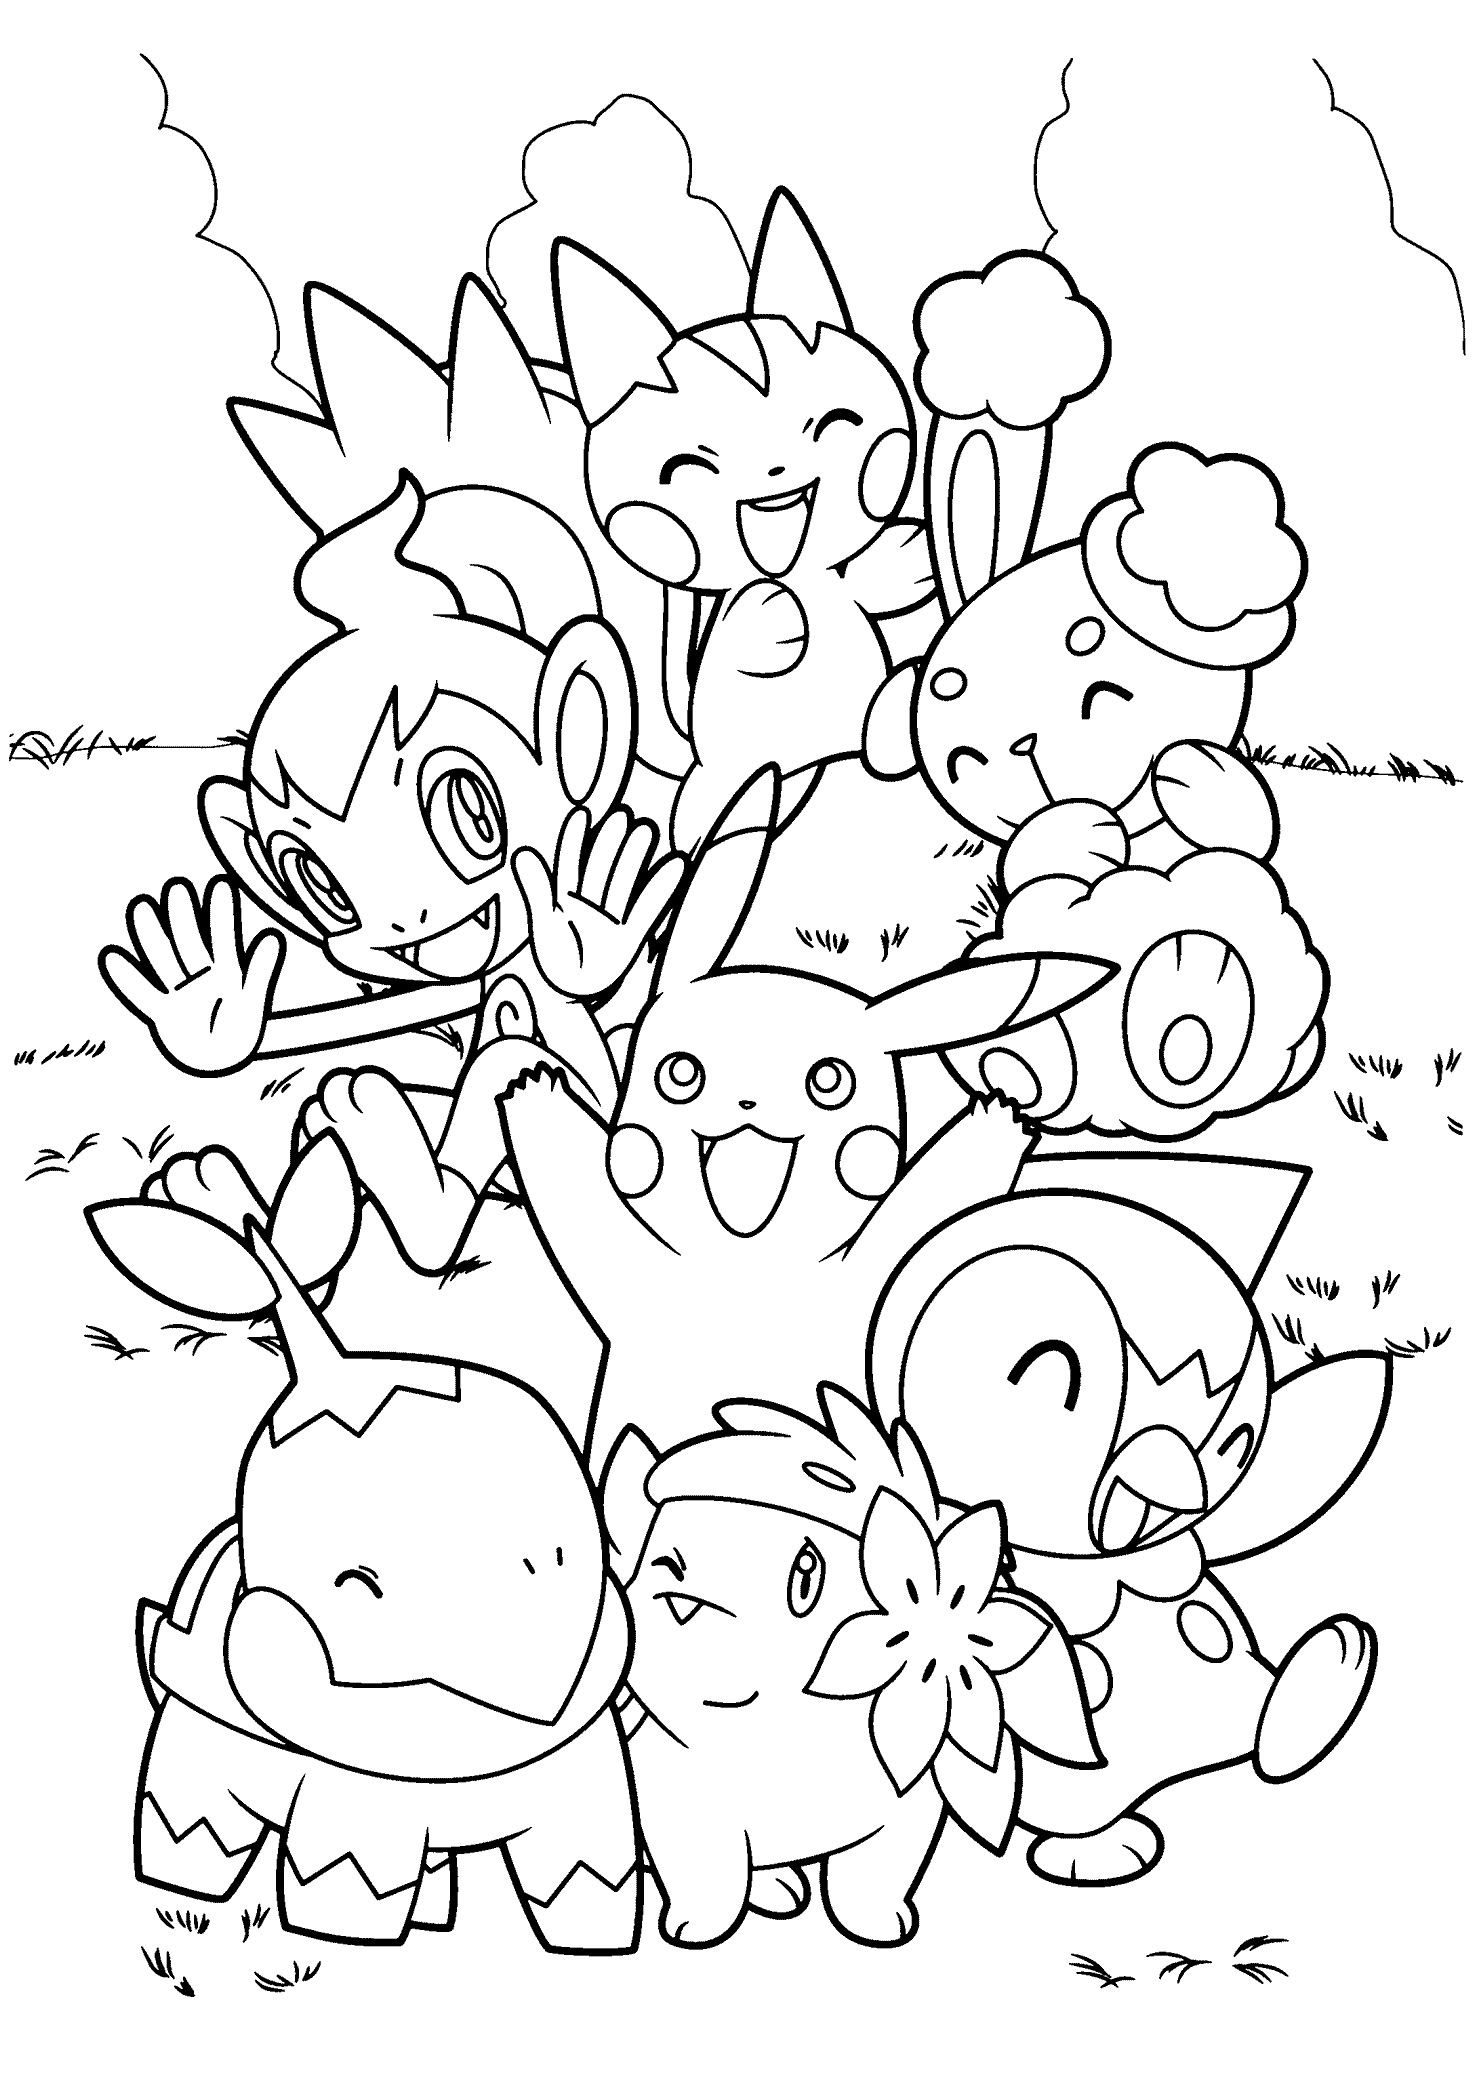 Pokemon Coloring Pages That You Can Color Online Through The Thousand Pictures On Line Concer Pokemon Coloring Sheets Pokemon Coloring Pages Pokemon Coloring